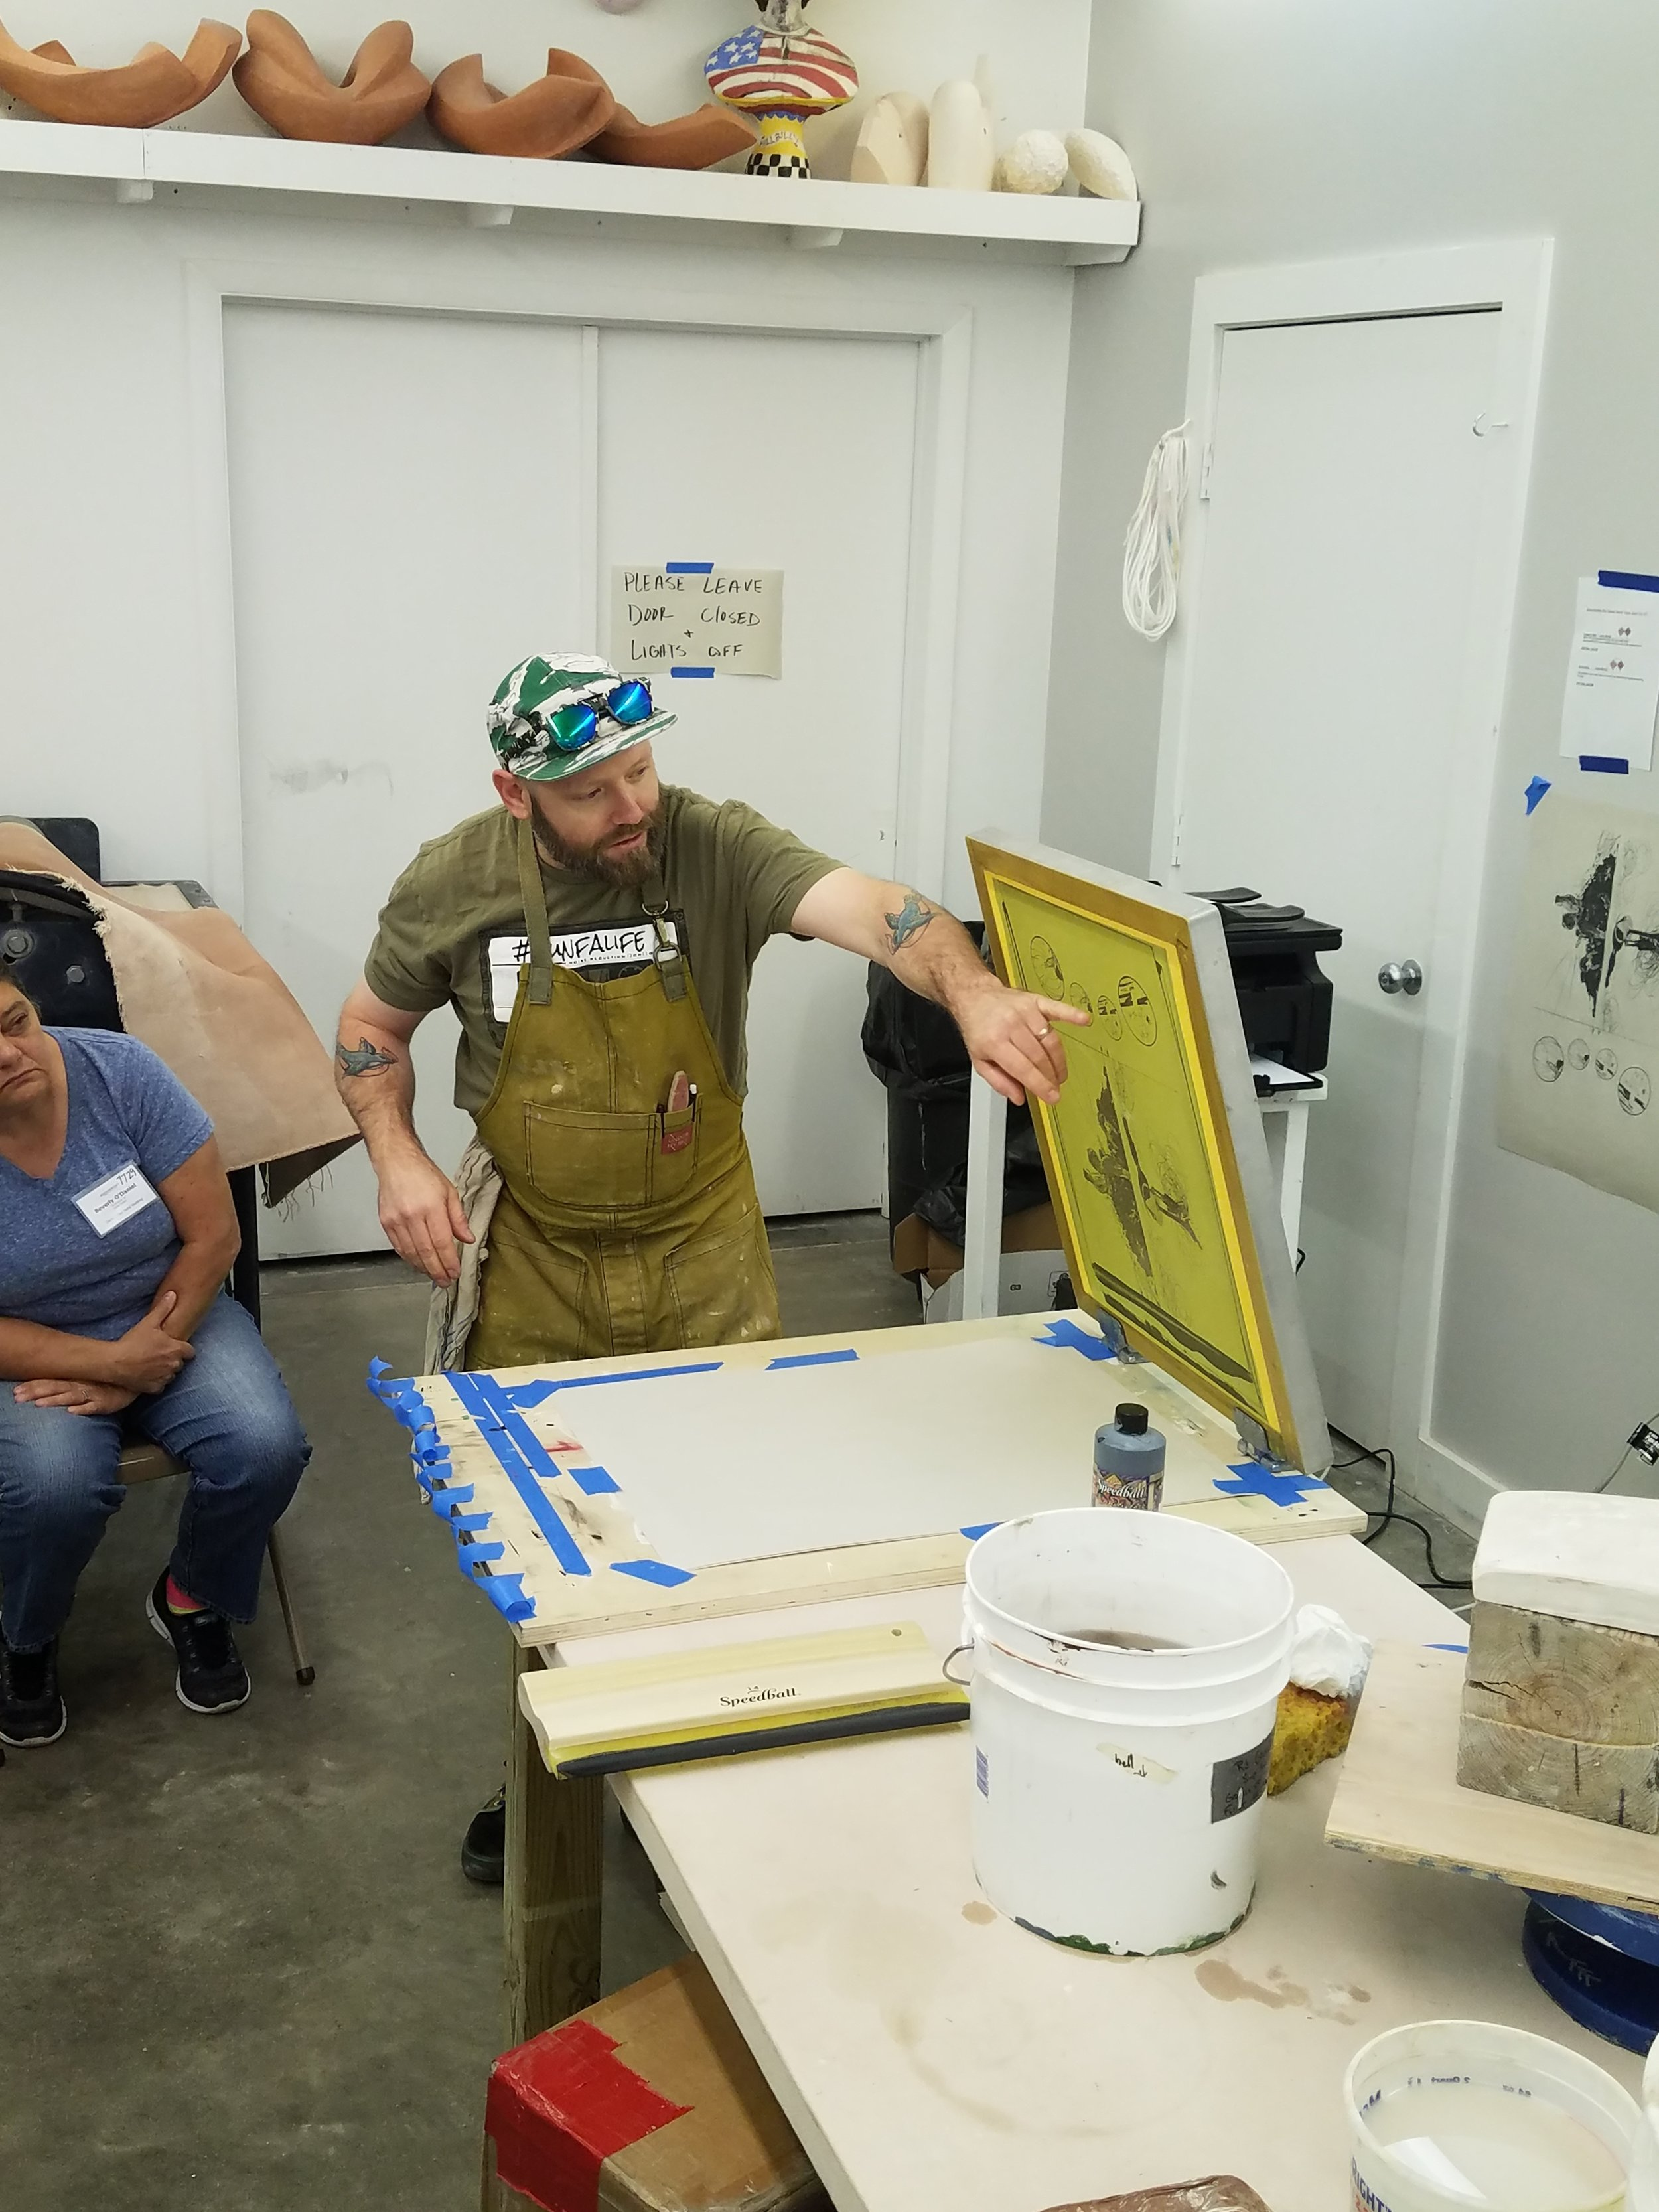 Israel is giving a demo on how to screen print onto newsprint with underglaze for a newprint transfer.